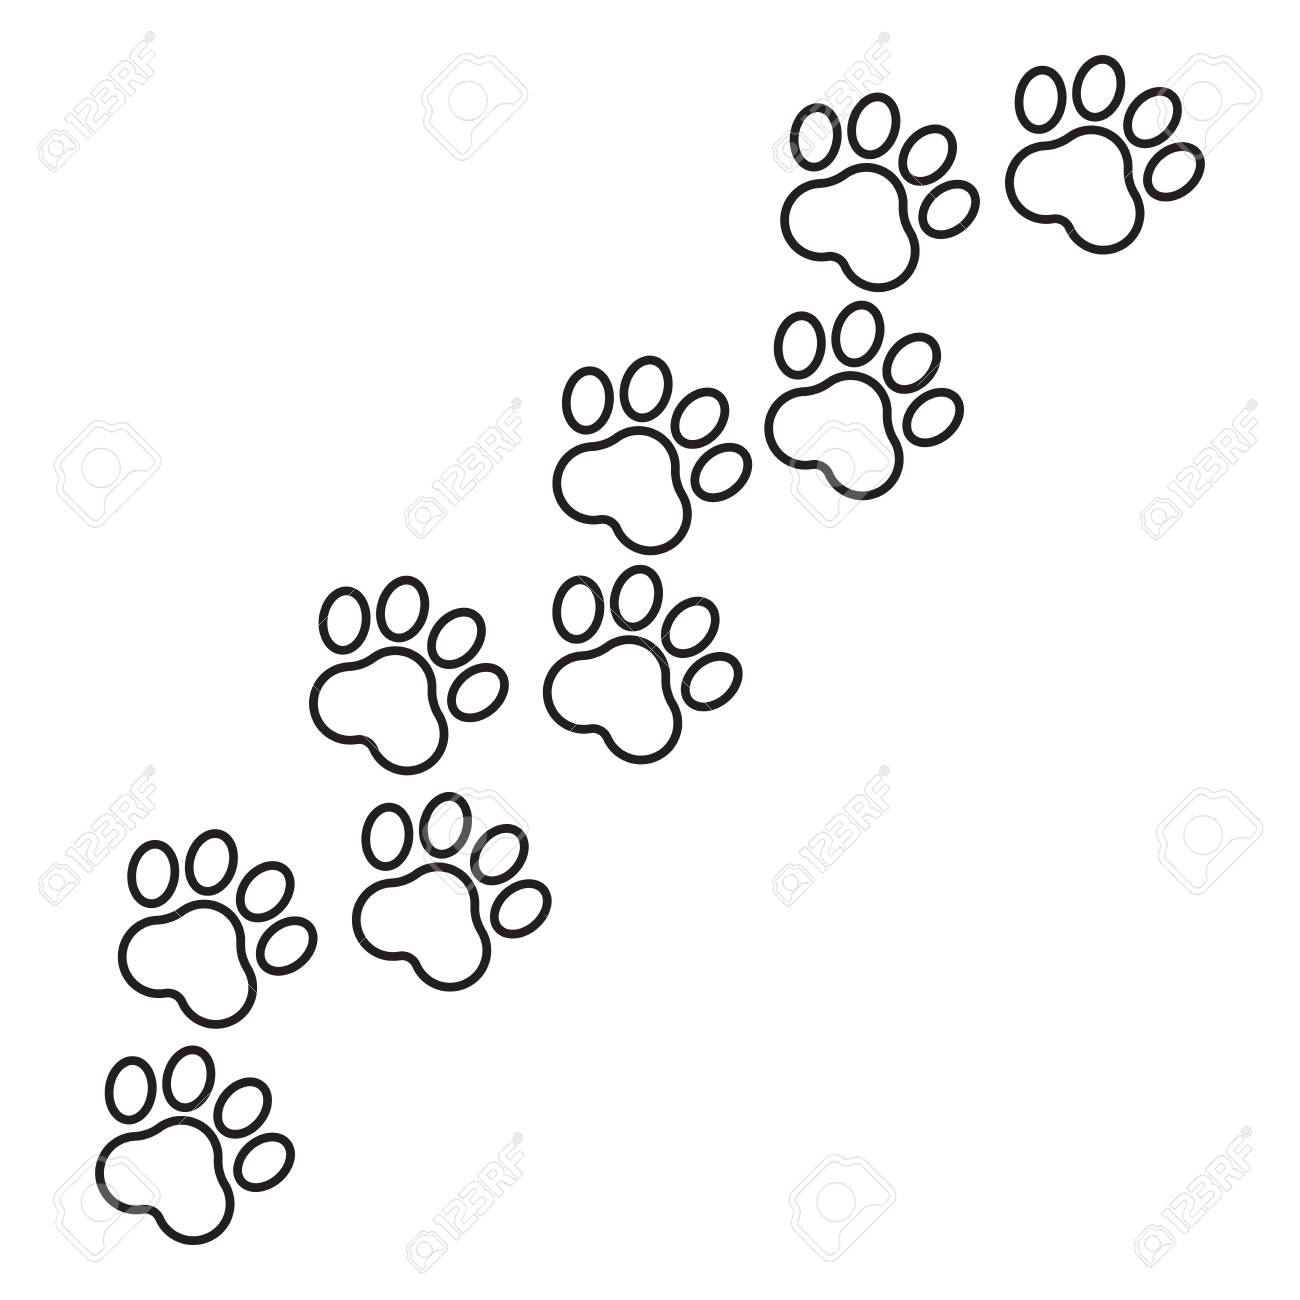 Paw Print Vector Icon In Line Style Dog Or Cat Pawprint Illustration